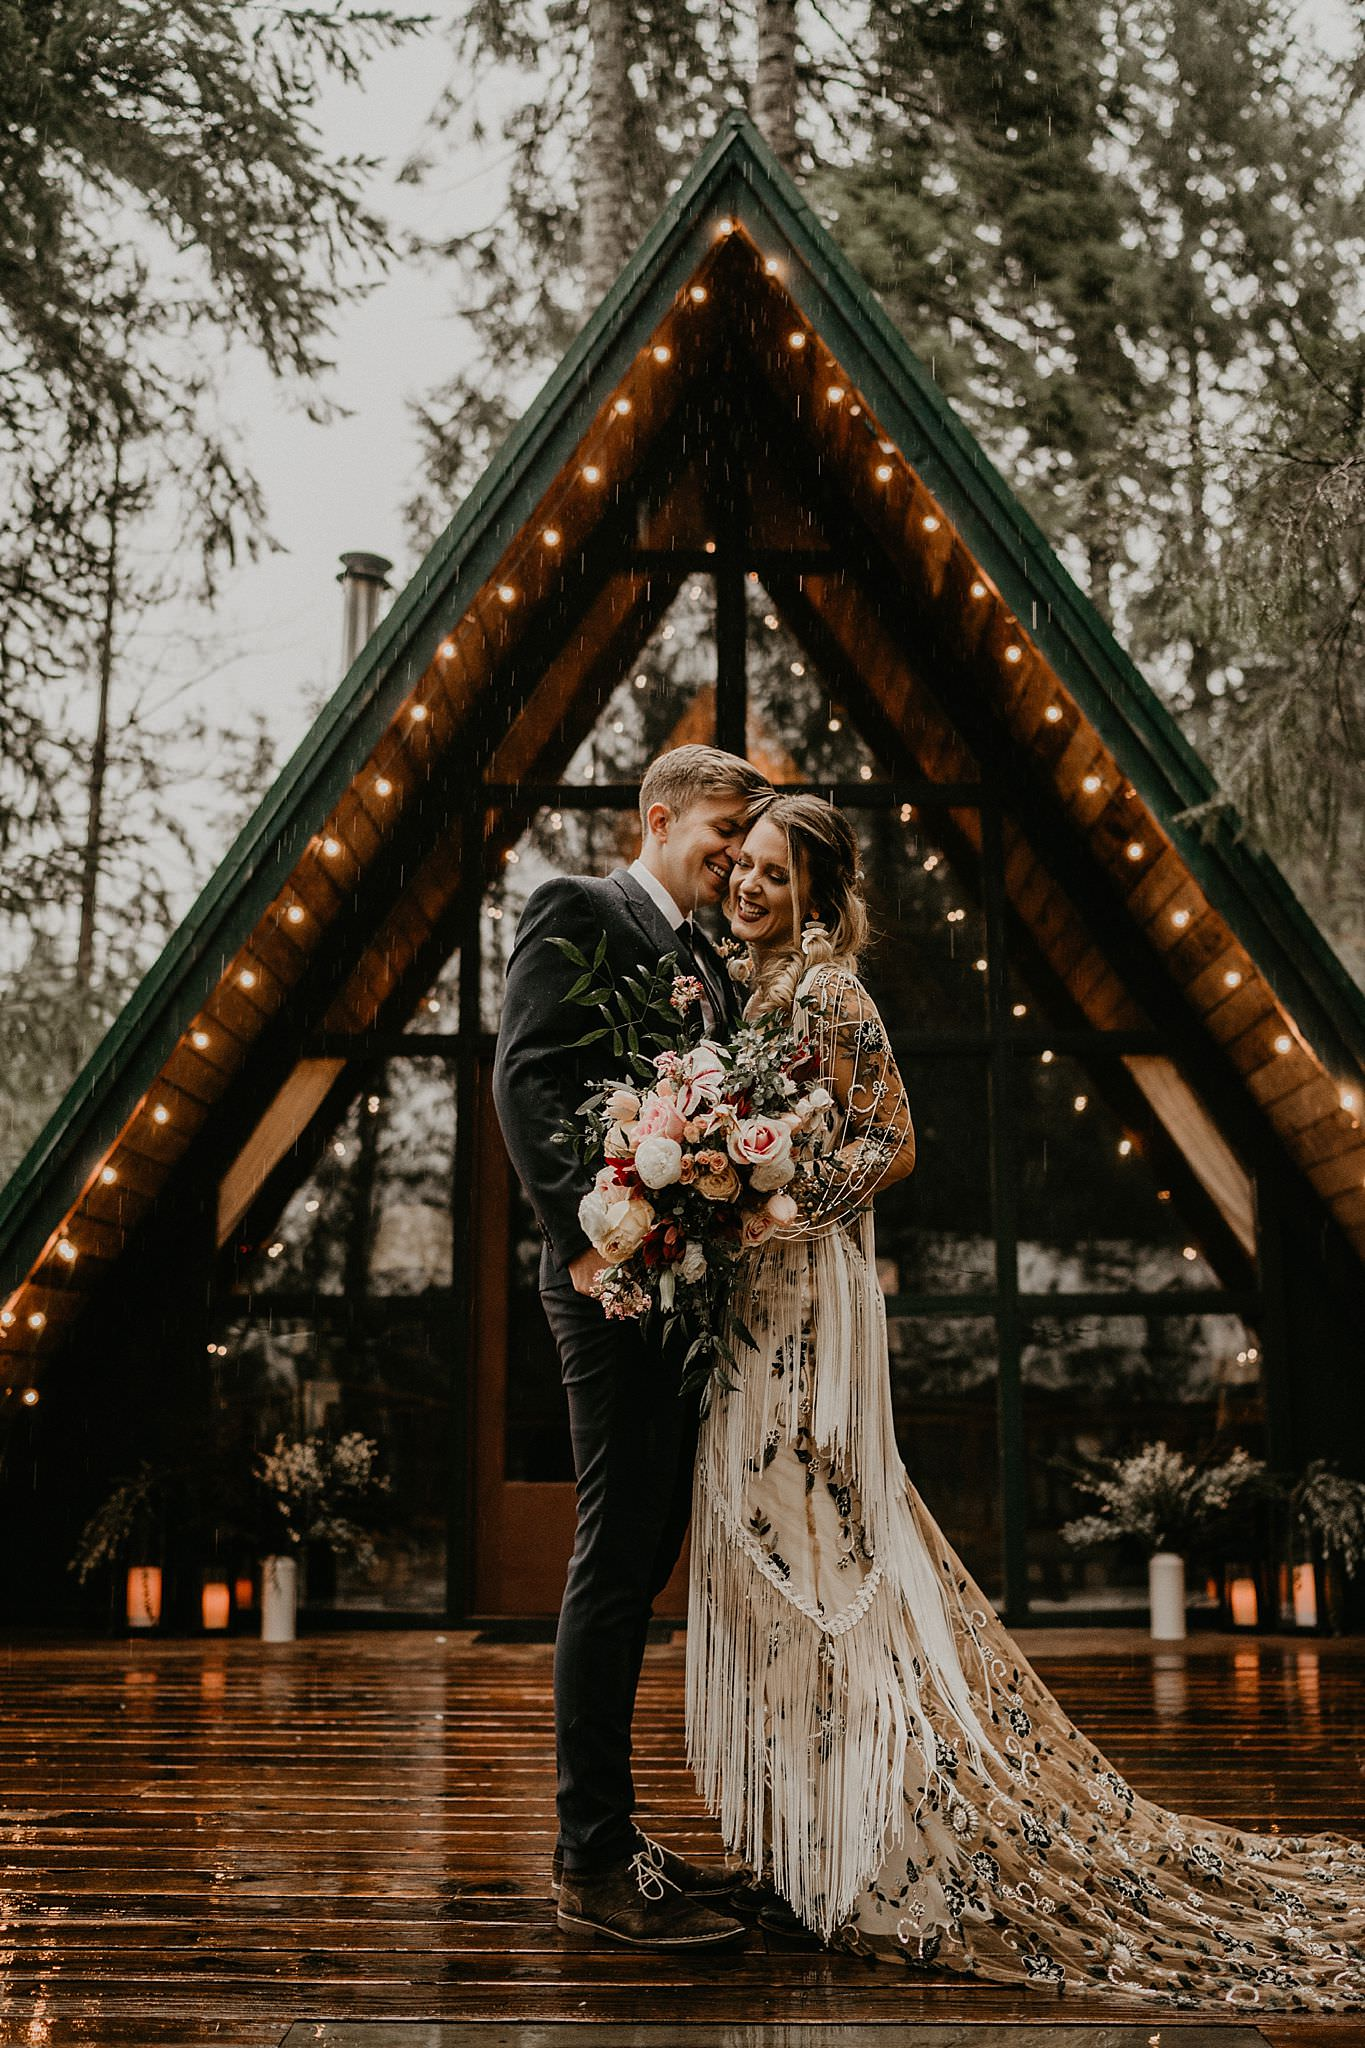 THE BEST OF THE BEST - MOST BEATIFUL PLACES TO ELOPE IN WASHINGTON - 1. Olympic National Park2. North Cascades National Park3. Mount Rainier National Park4. Snoqualmie Pass5. Gifford Pinchot National Forest